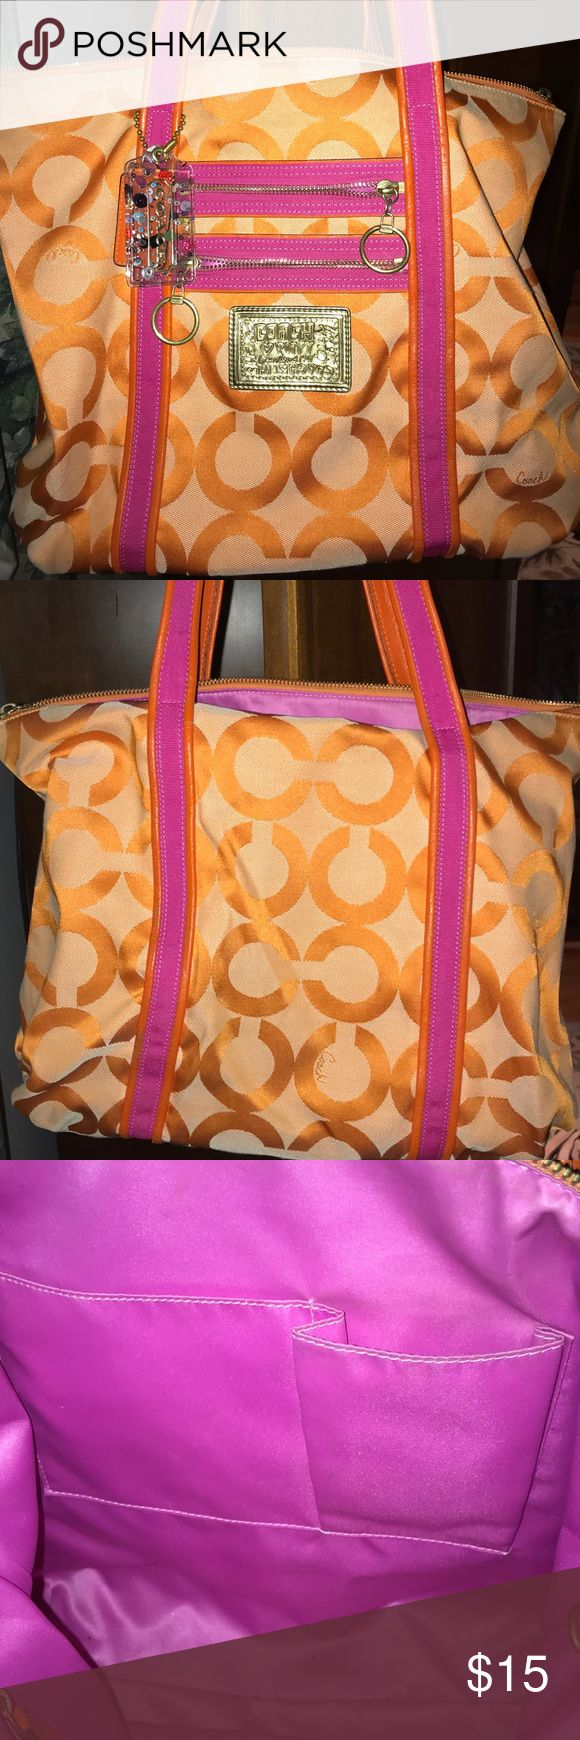 Coach Tote Orange & Pink Coach tote orange & pink. In good condition! Perfect summer bag for the beach. Coach Bags Totes